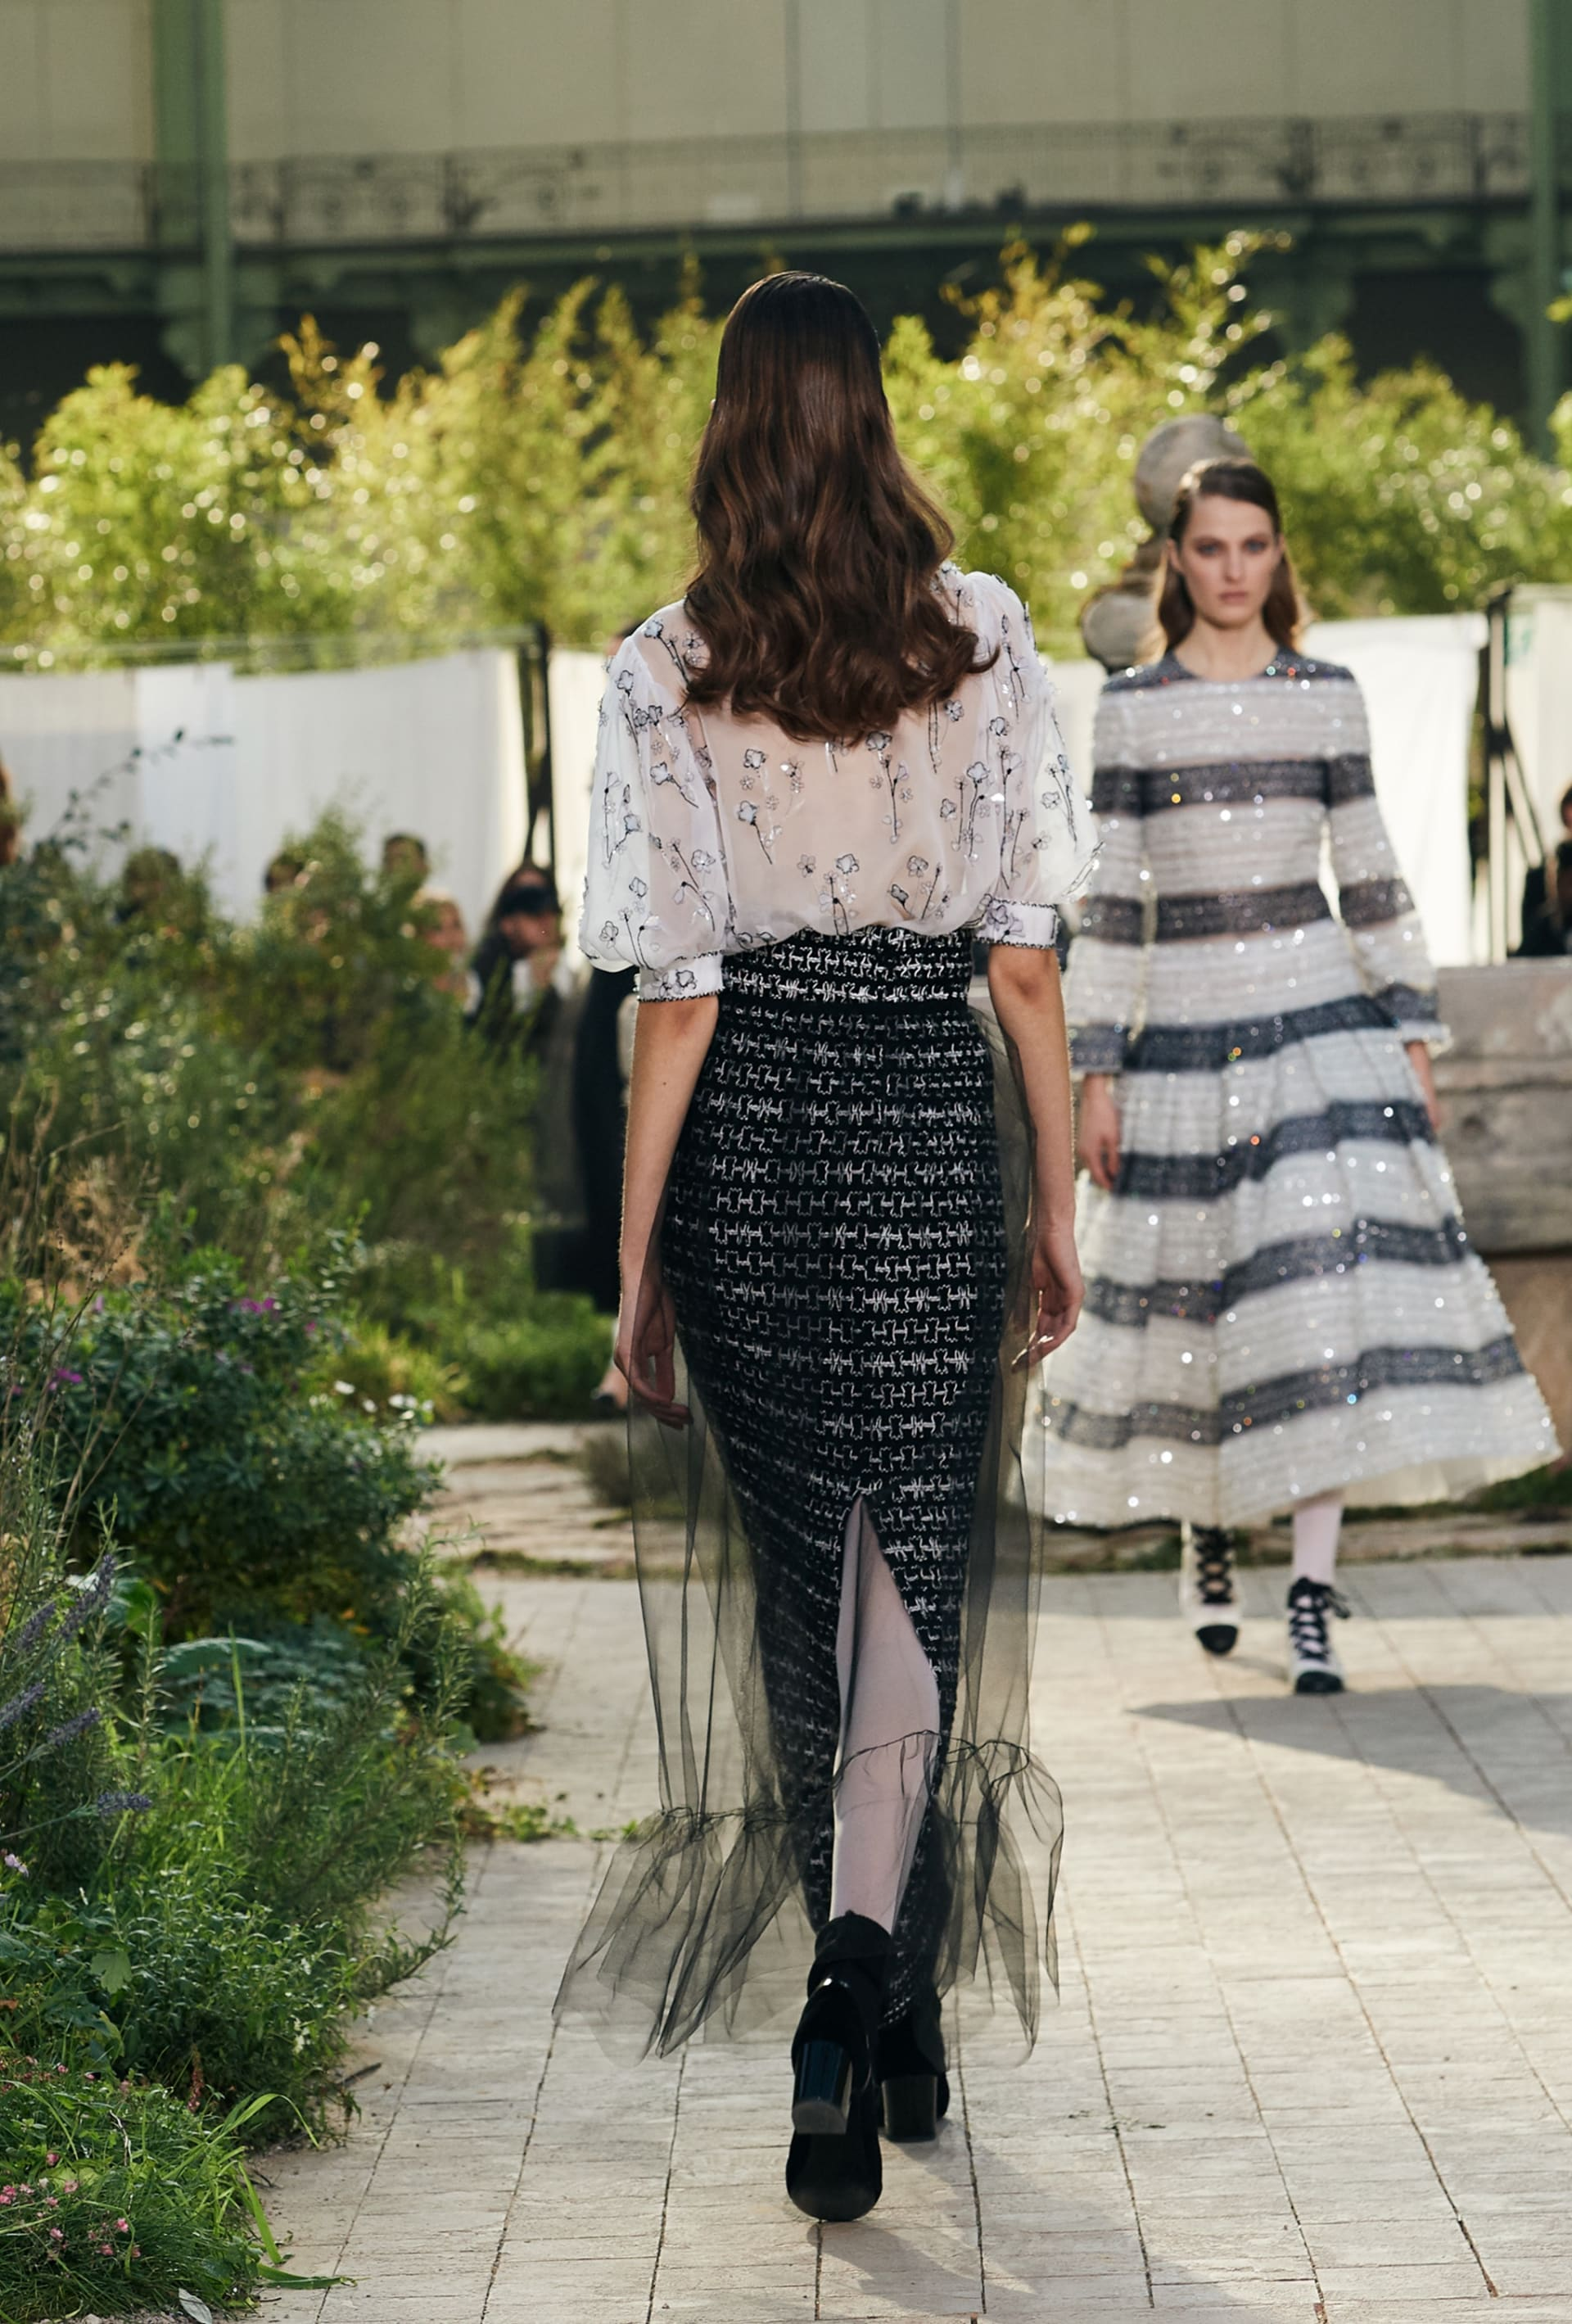 View 4 - Look 50 - Spring-Summer 2020 Haute Couture - see full sized version